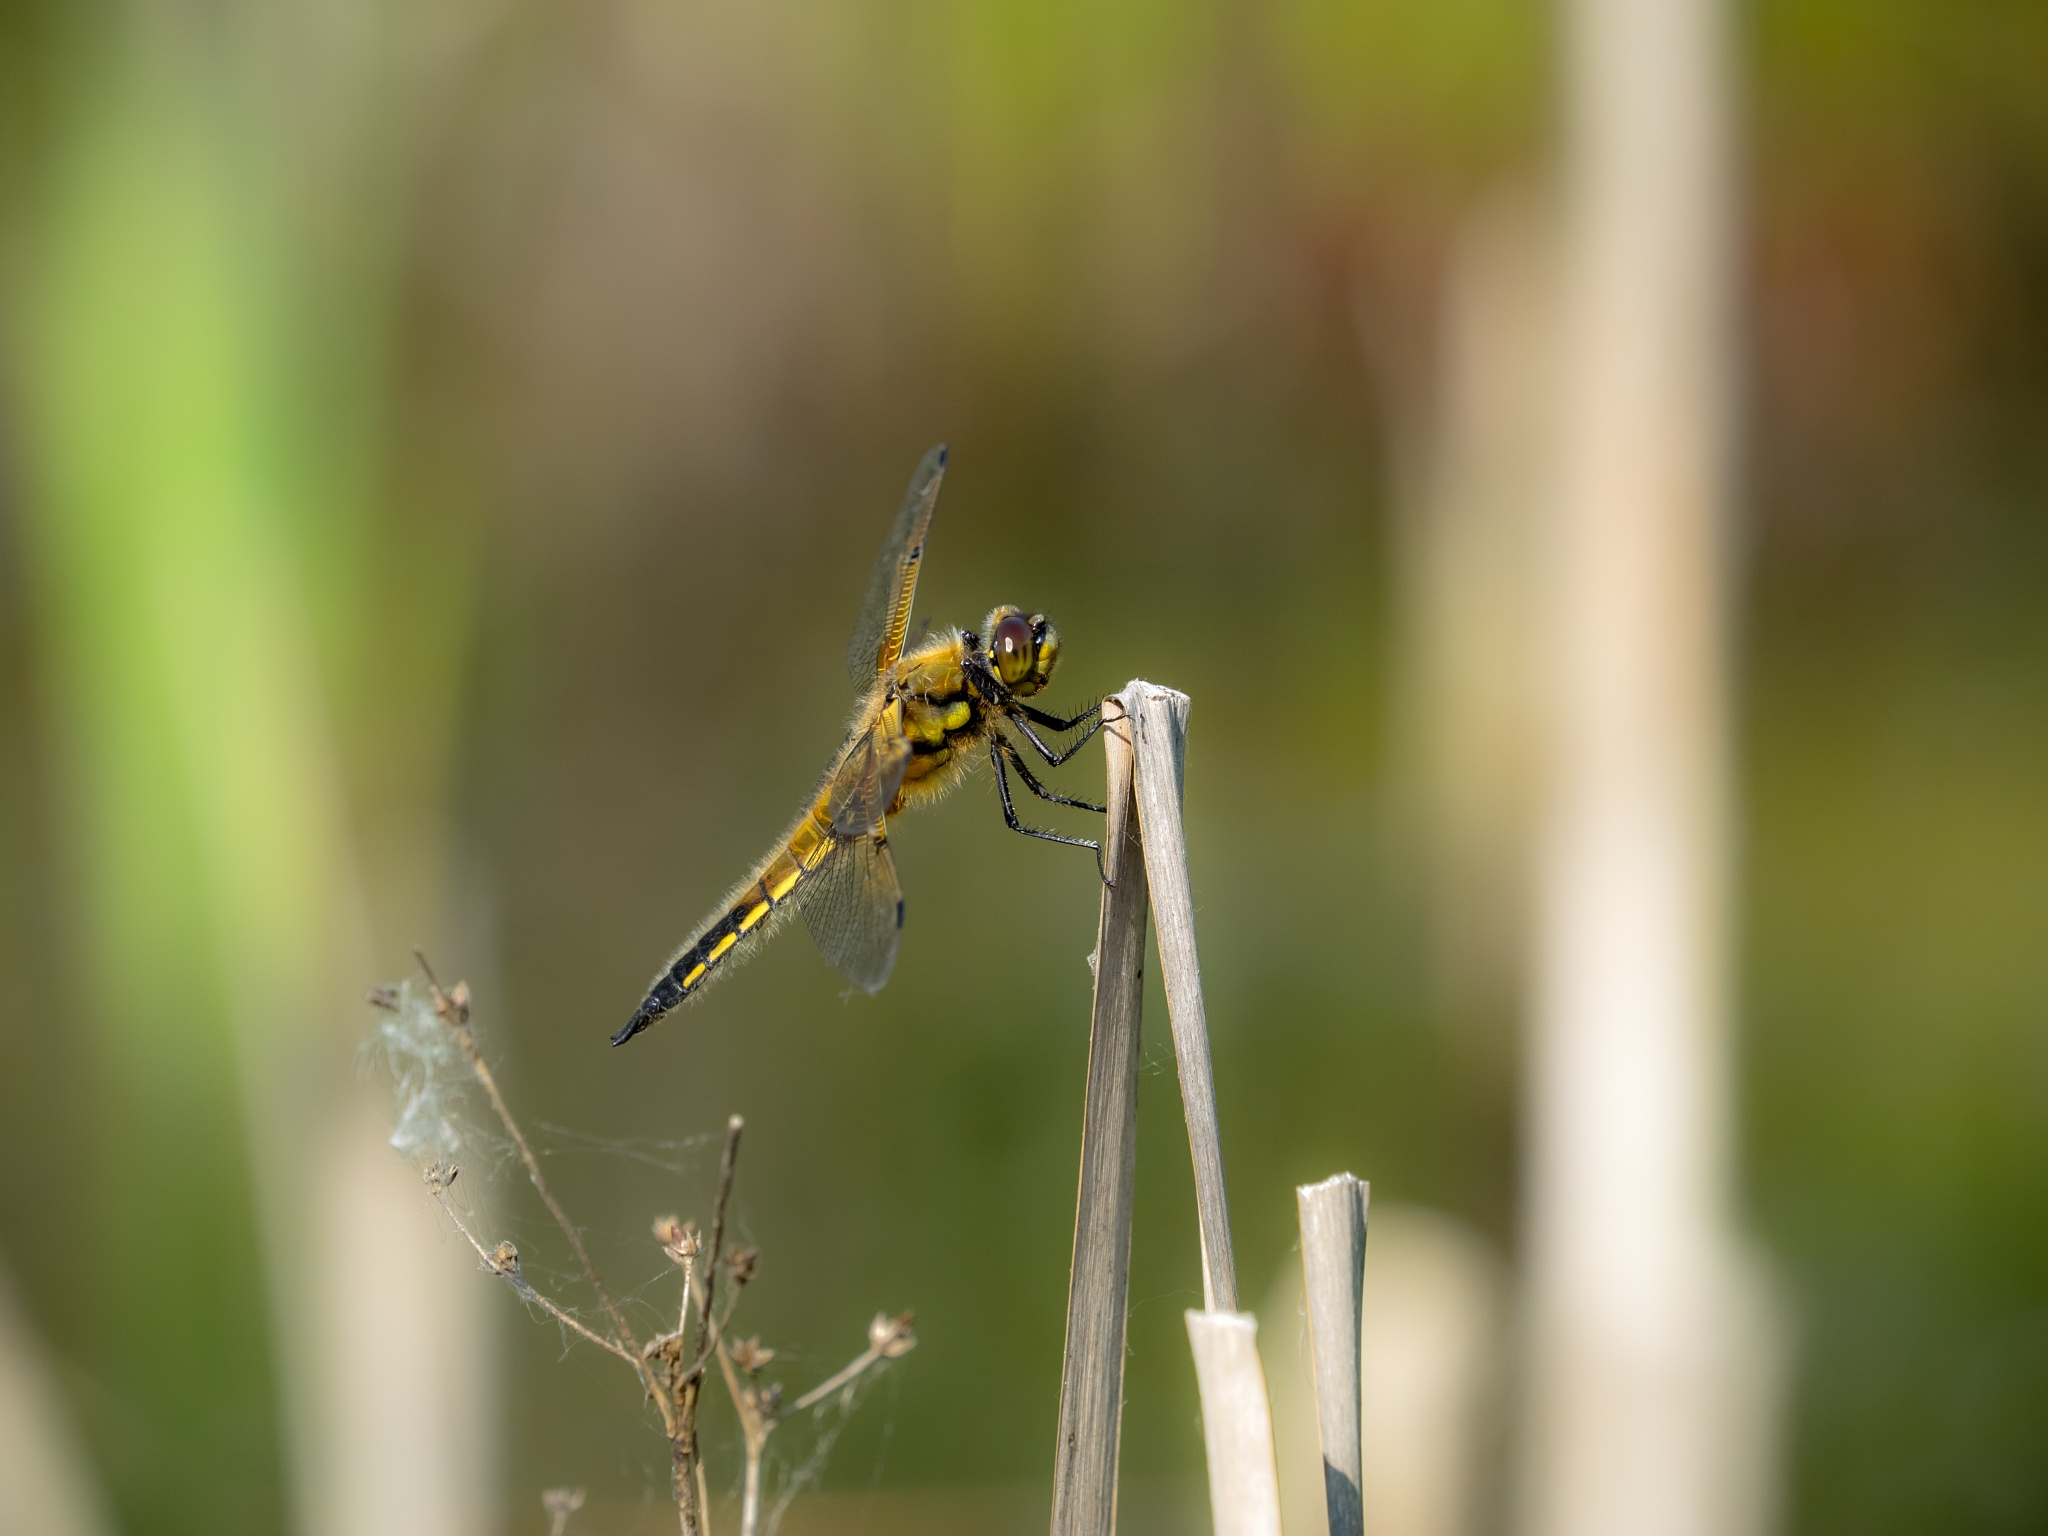 Another Dragonfly by Sarah Walters